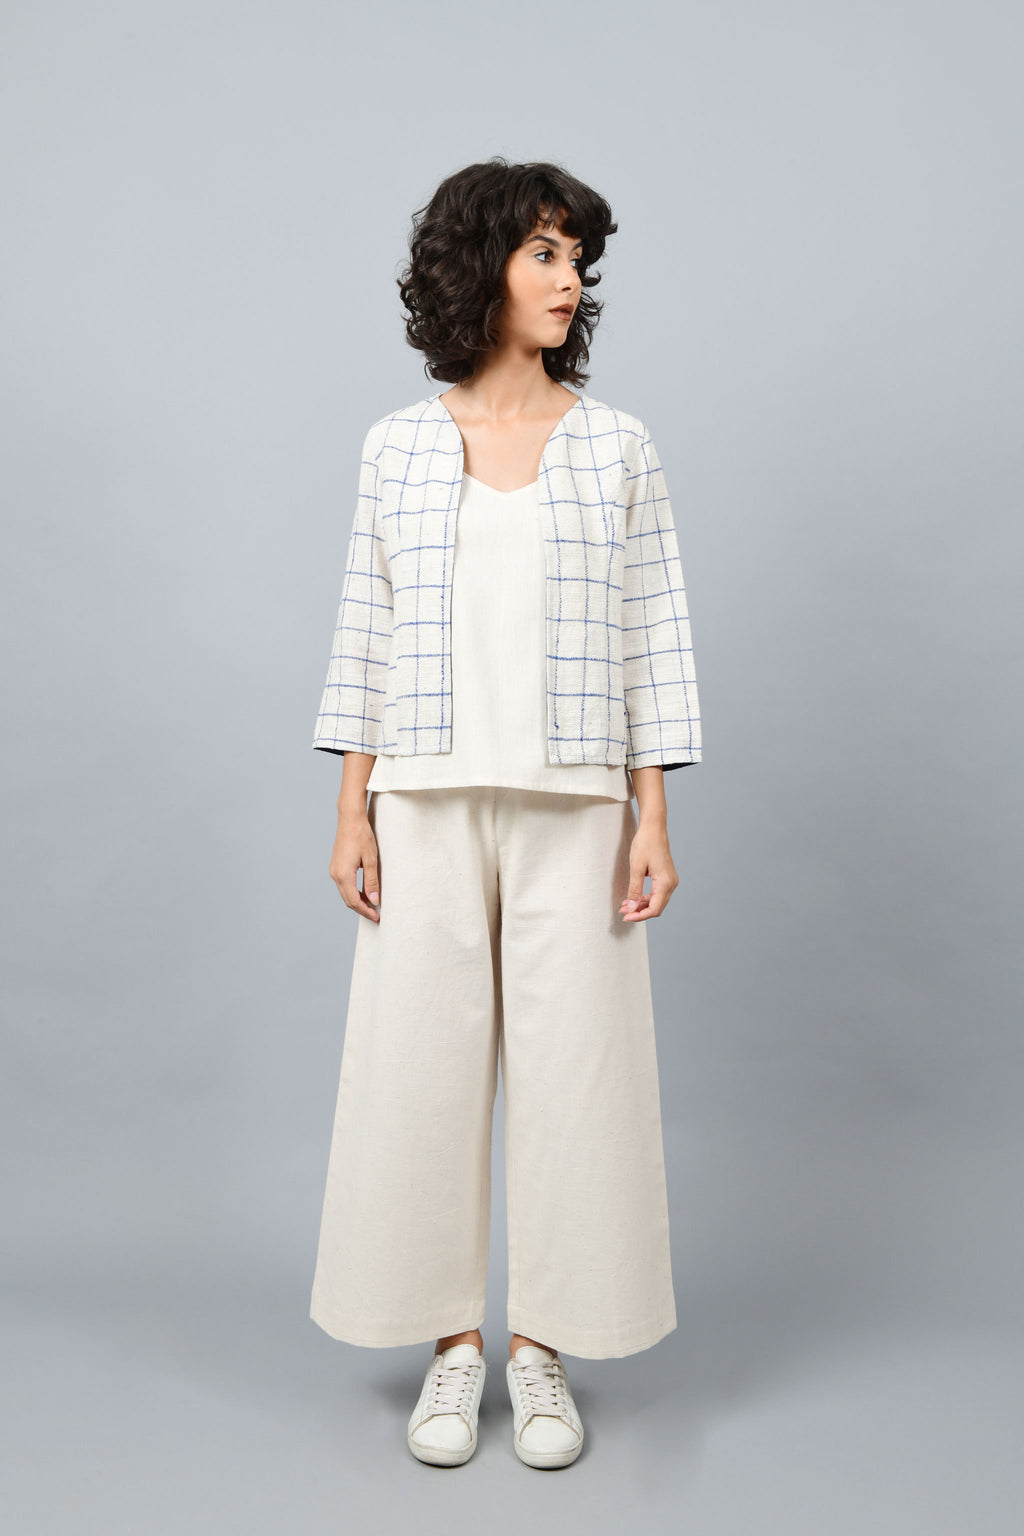 Model posing for the camera wearing open short jacket in thicker white handspun and handwoven khadi cotton with big blue checks over off-white spaghetti top and off-white palazzos paired with white sneakers.